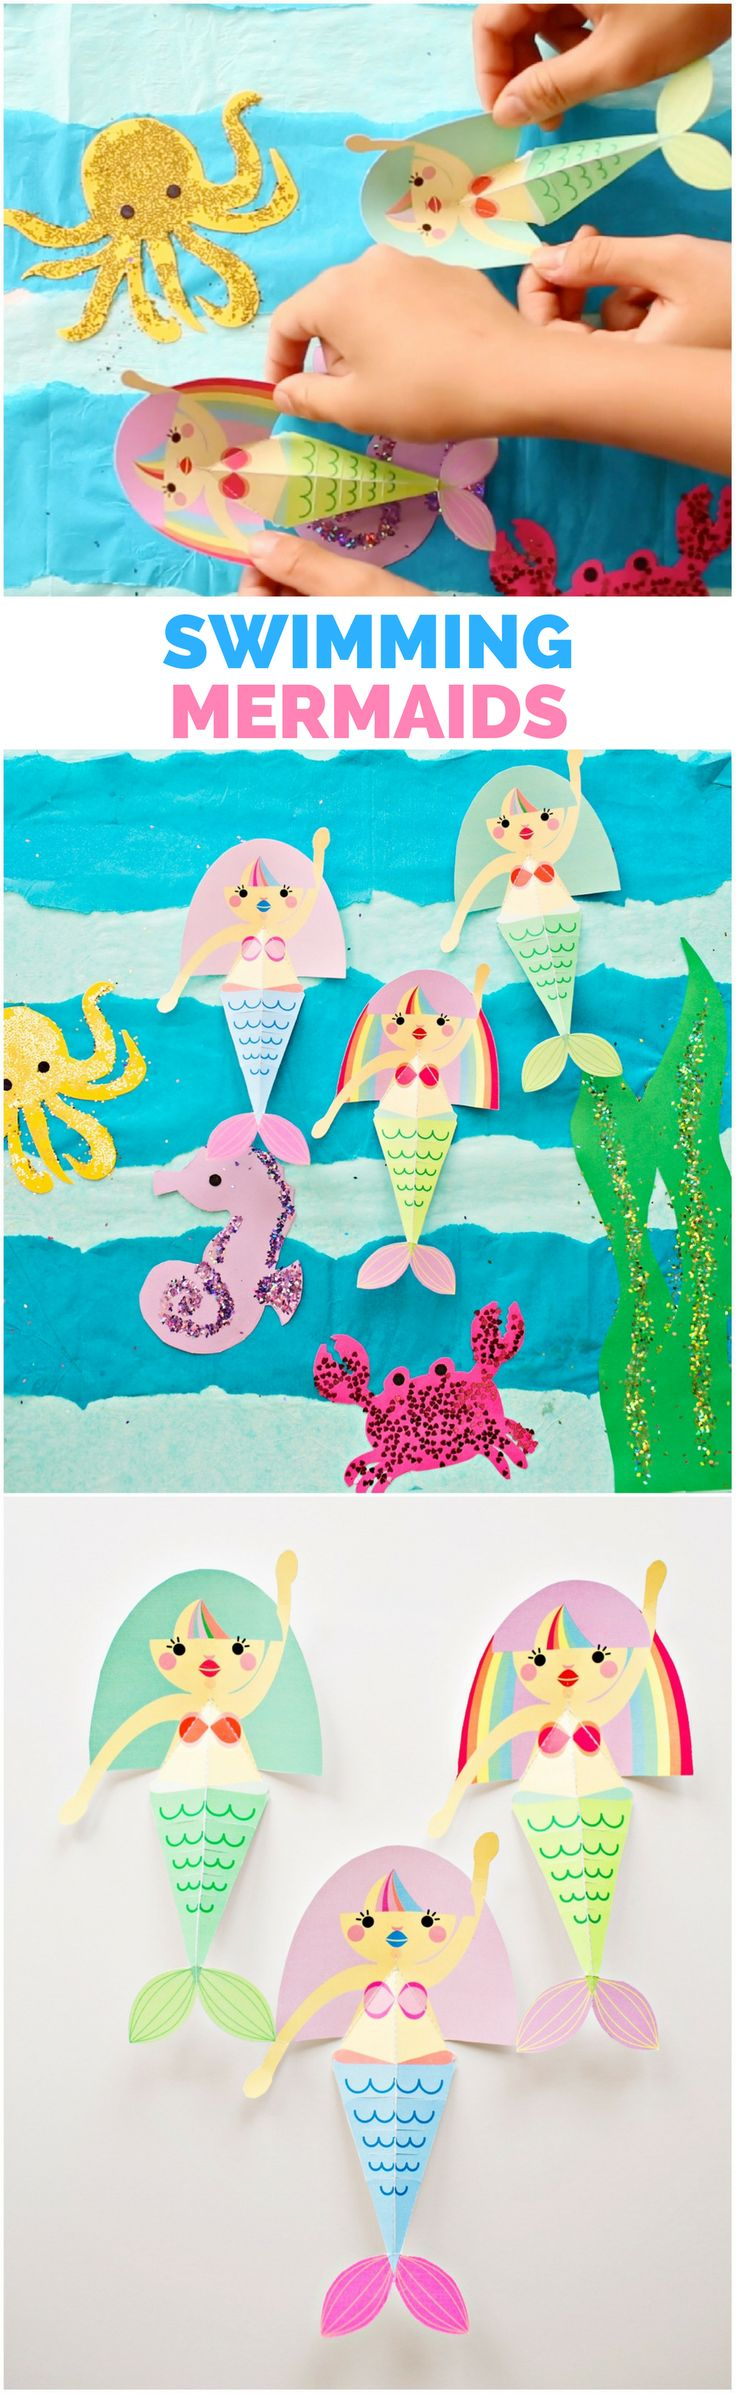 Swimming Mermaid Paper Craft with Free Printable Templates. These cute mermaids actually flap their fins! Blank option to color your own.